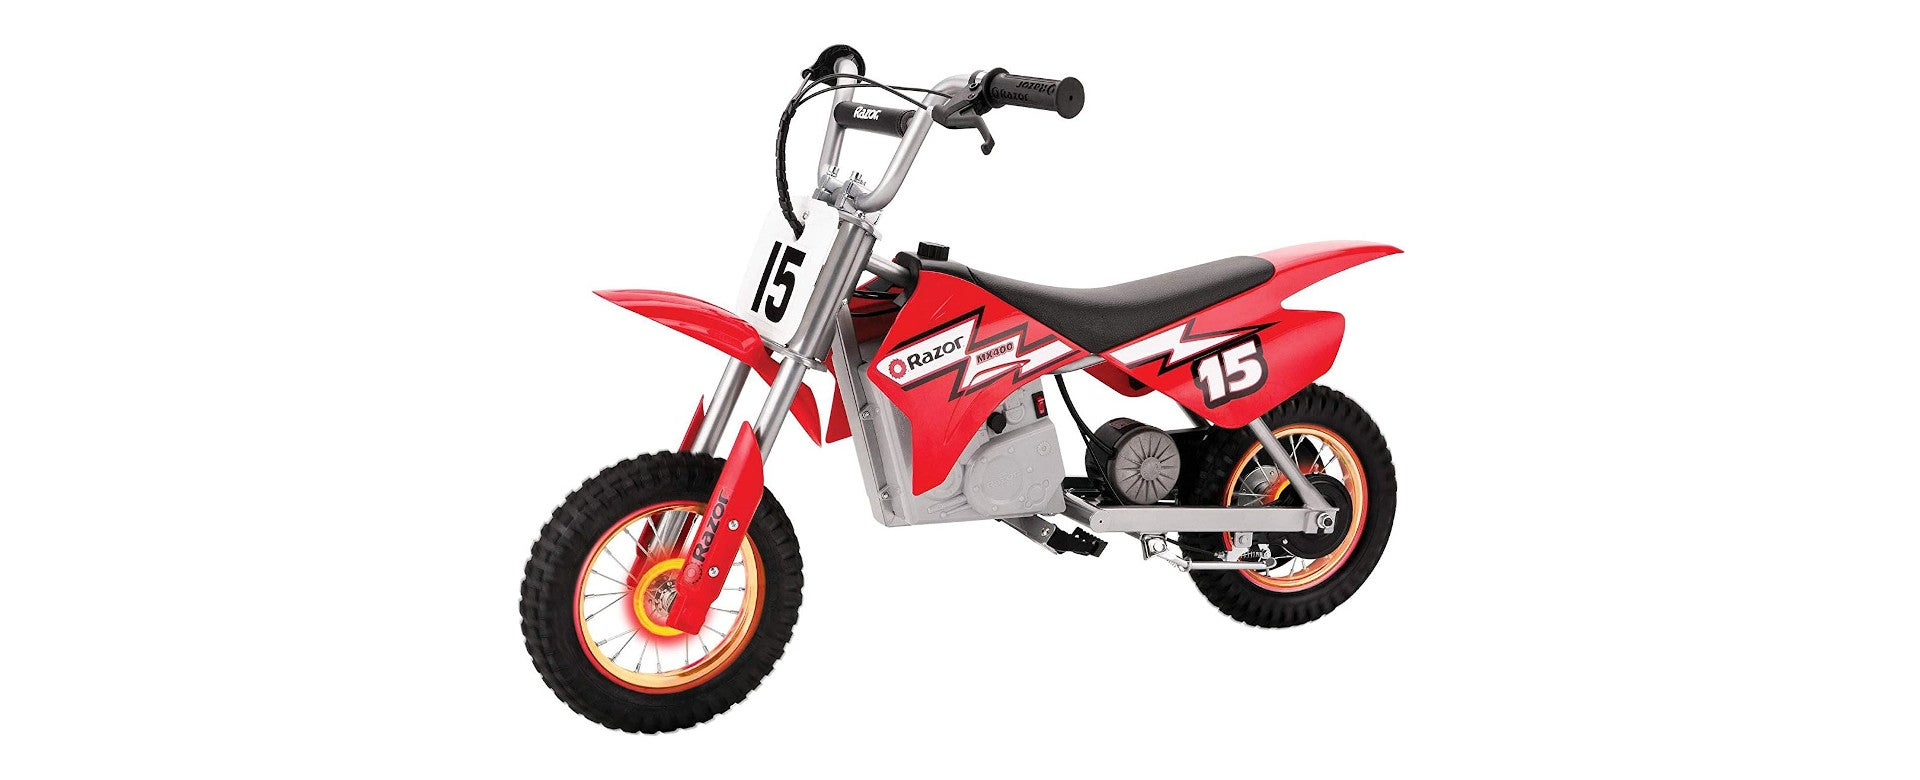 The Best Motorcycles for Kids (Review) in 2021